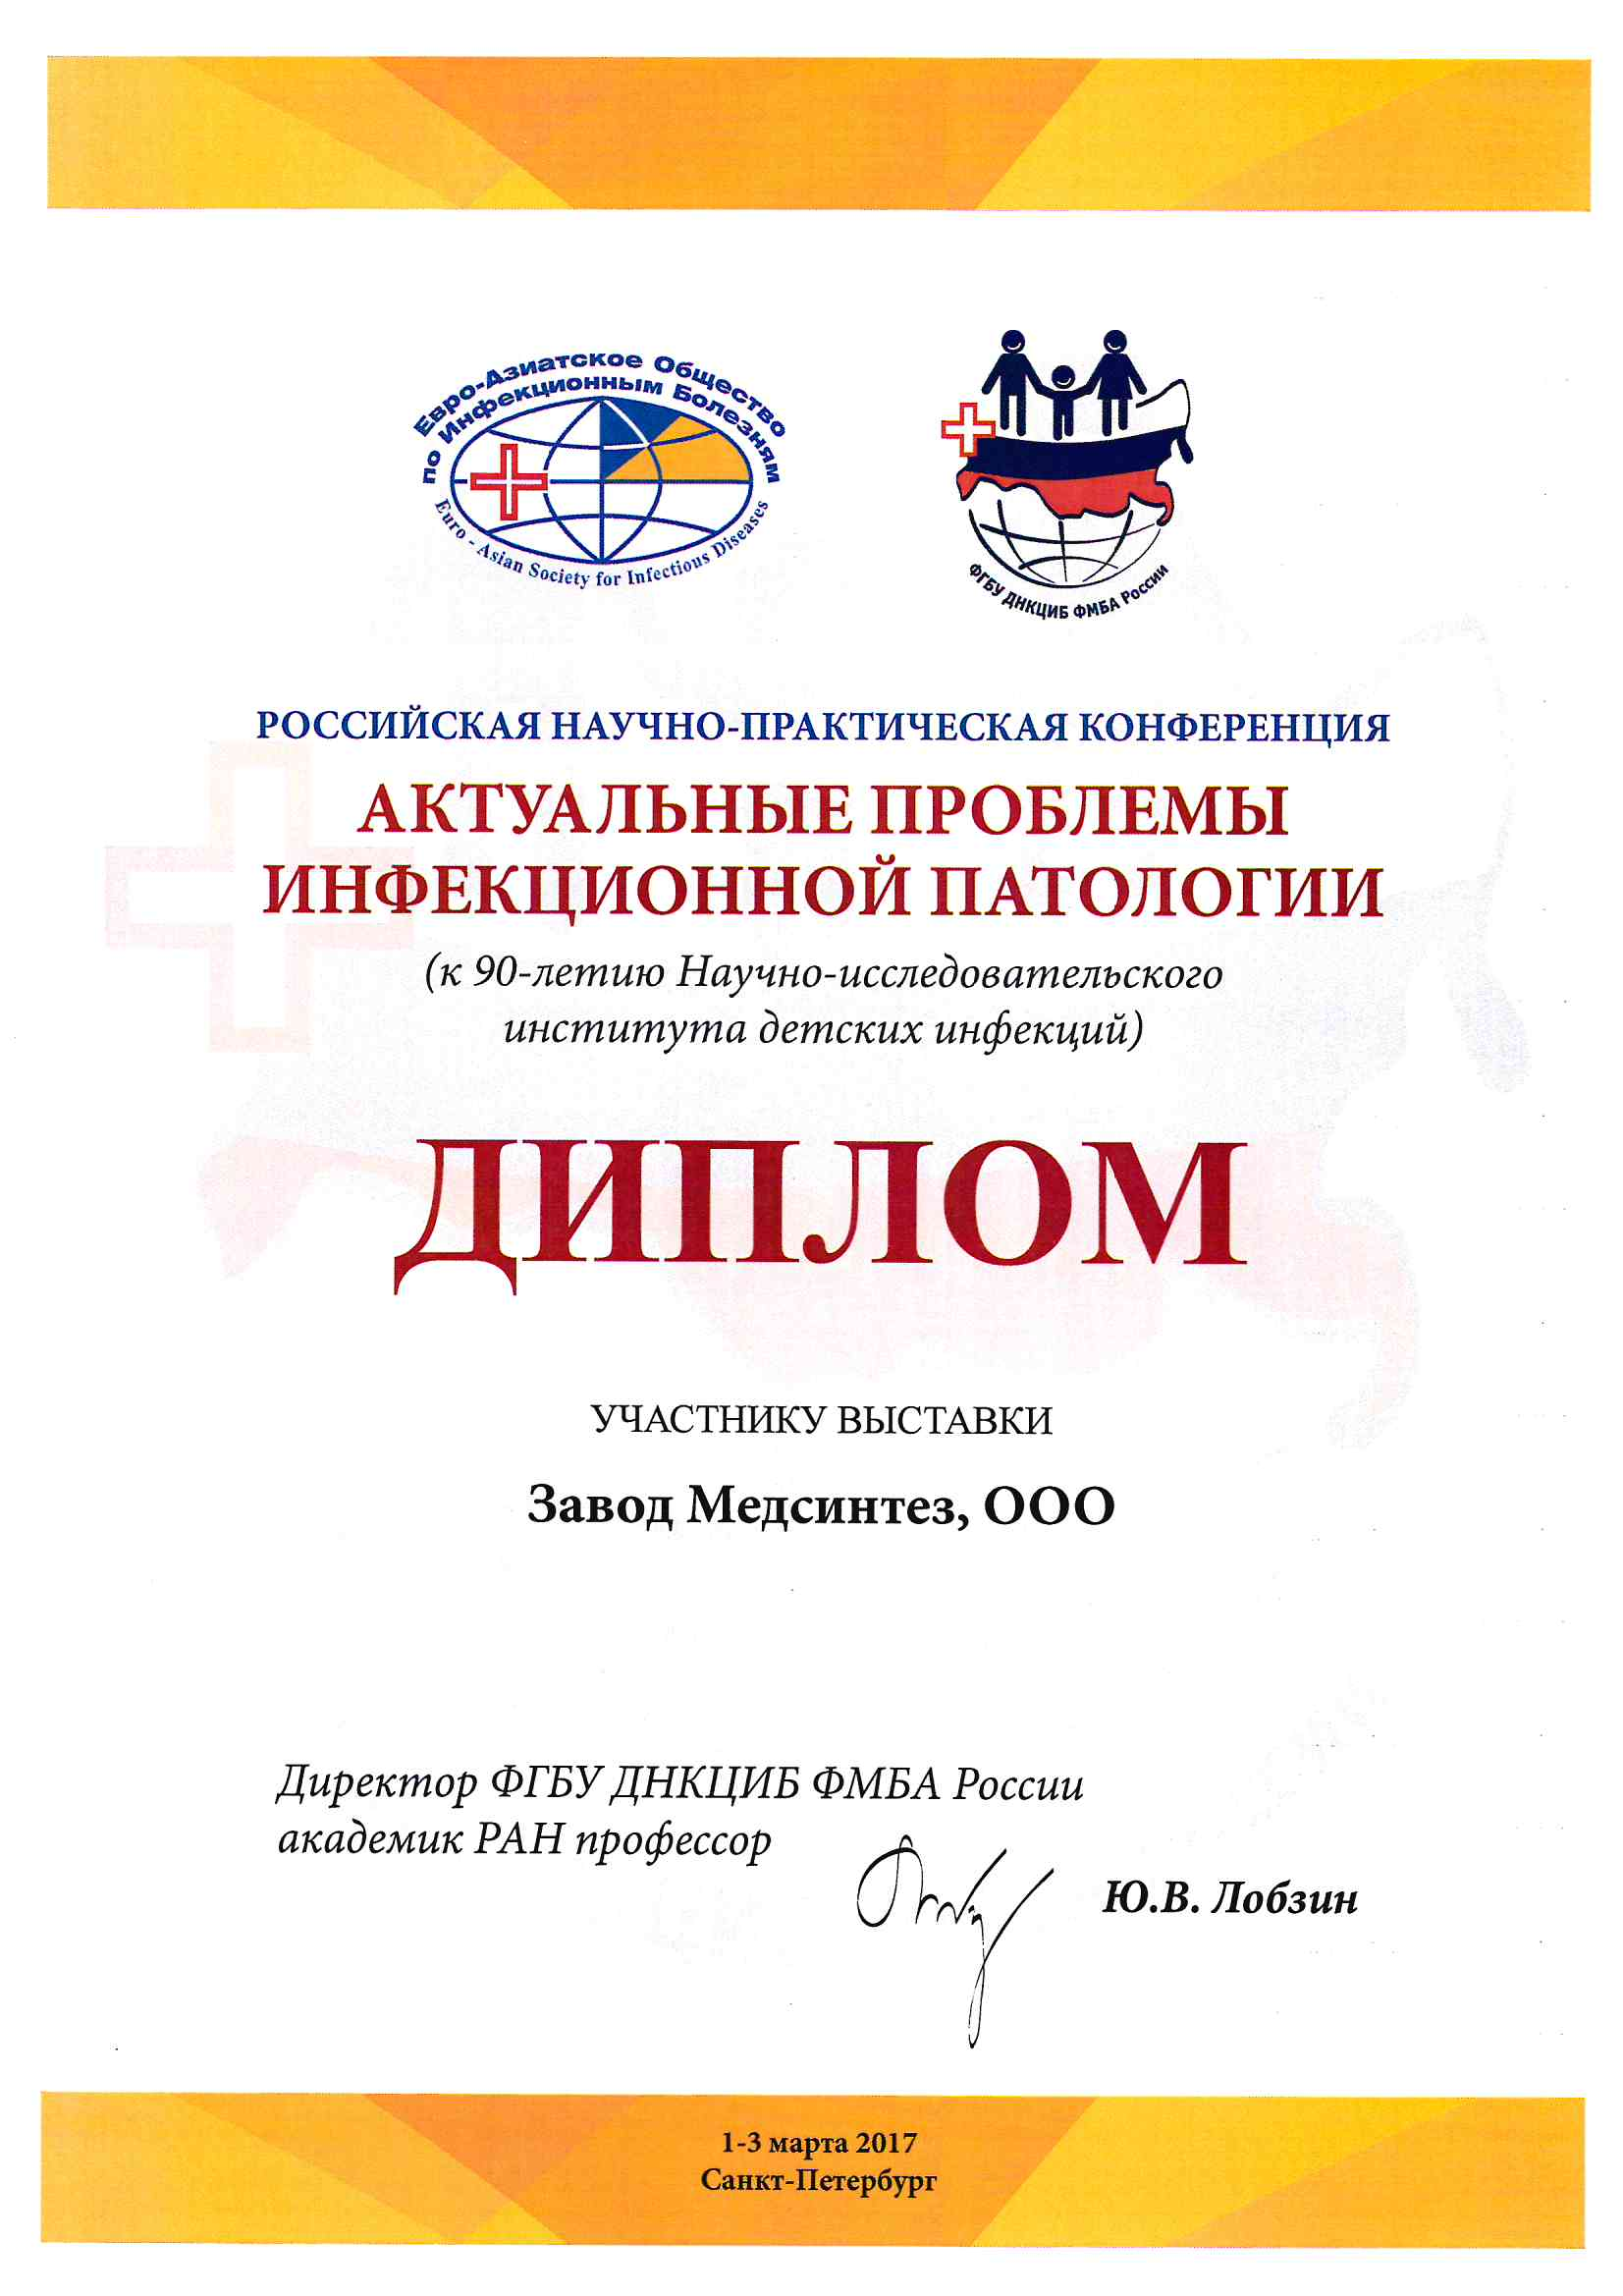 The Diploma of participation in Pressing Problems of Infectious Pathology, a Russian scientific-practical conference, March 1-3, 2017, St. Petersburg